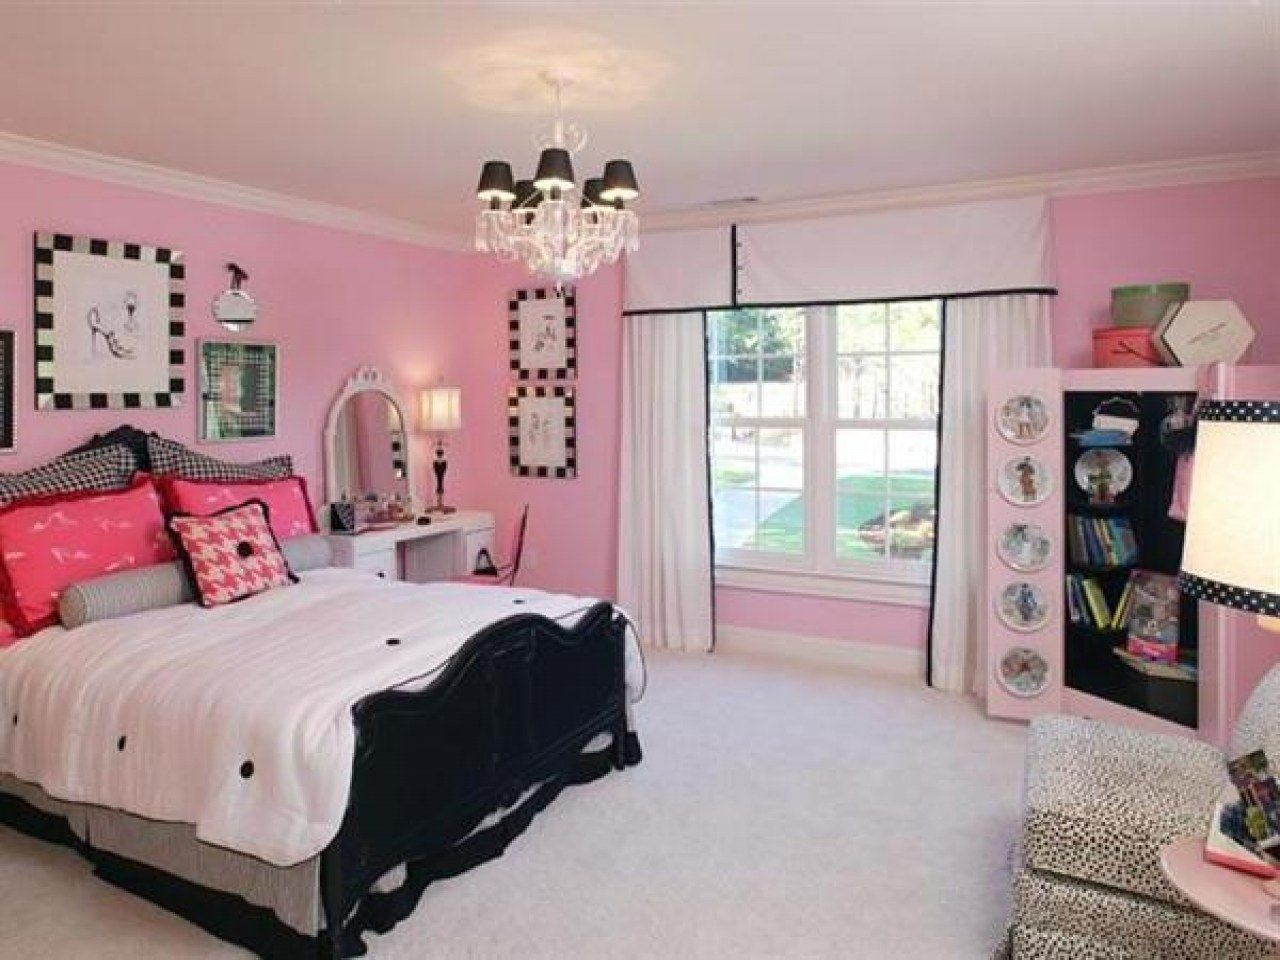 Best Paint Colors For Girls Bedroom Bedroom Wall Colors For With Pictures